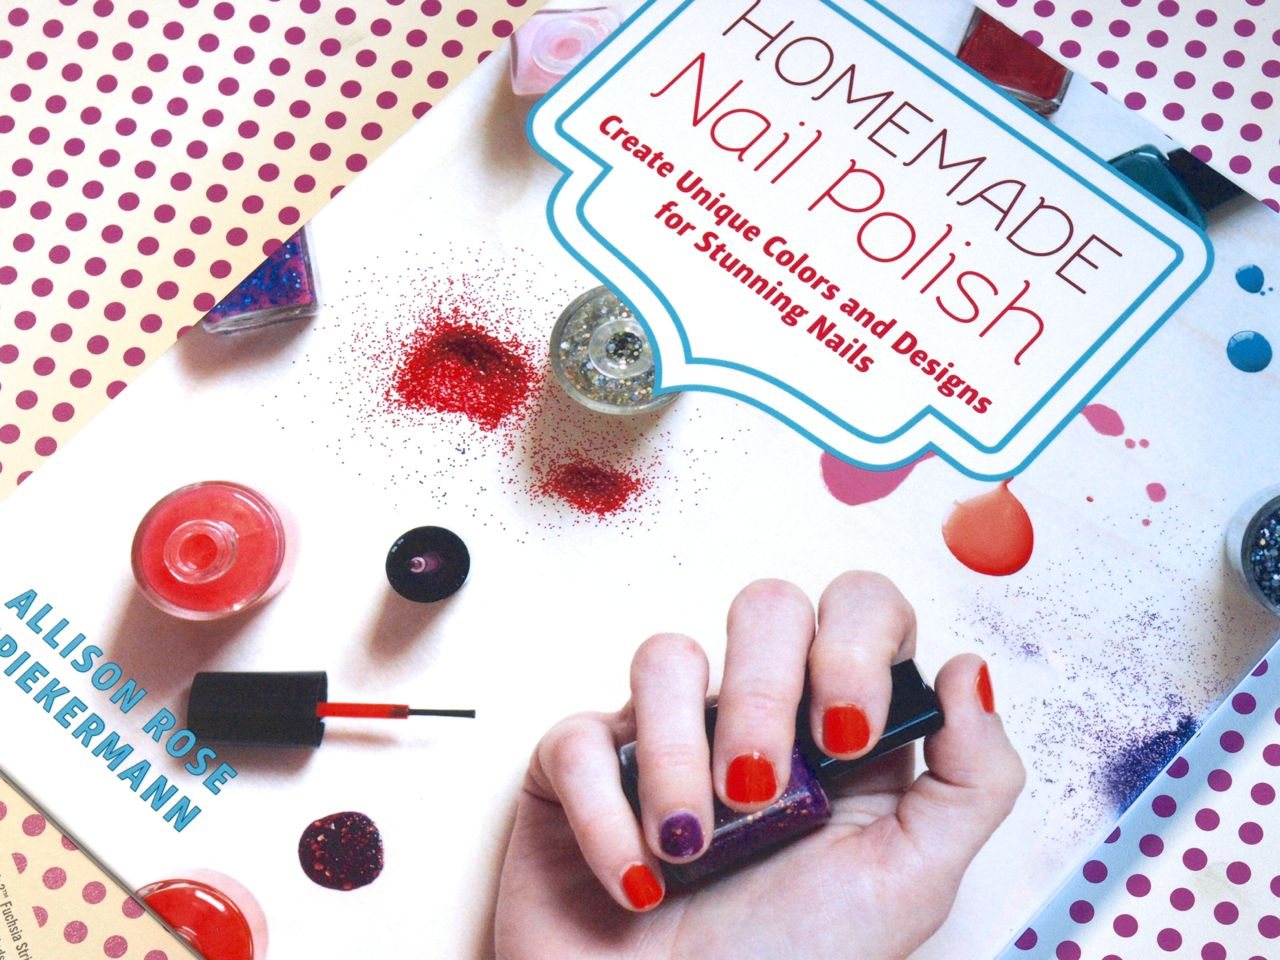 Book Review: Homemade Nail Polish by Allison Rose Spiekermann | The on homemade rings designs, homemade bracelets designs, homemade bags designs, homemade easy nail designs, homemade jewellery designs, homemade soap designs, homemade shoes designs, homemade jewelry designs, homemade veil designs, homemade dresses designs, homemade wedding cake, homemade kite designs, zebra nail designs, homemade acrylic nails, homemade earrings designs,